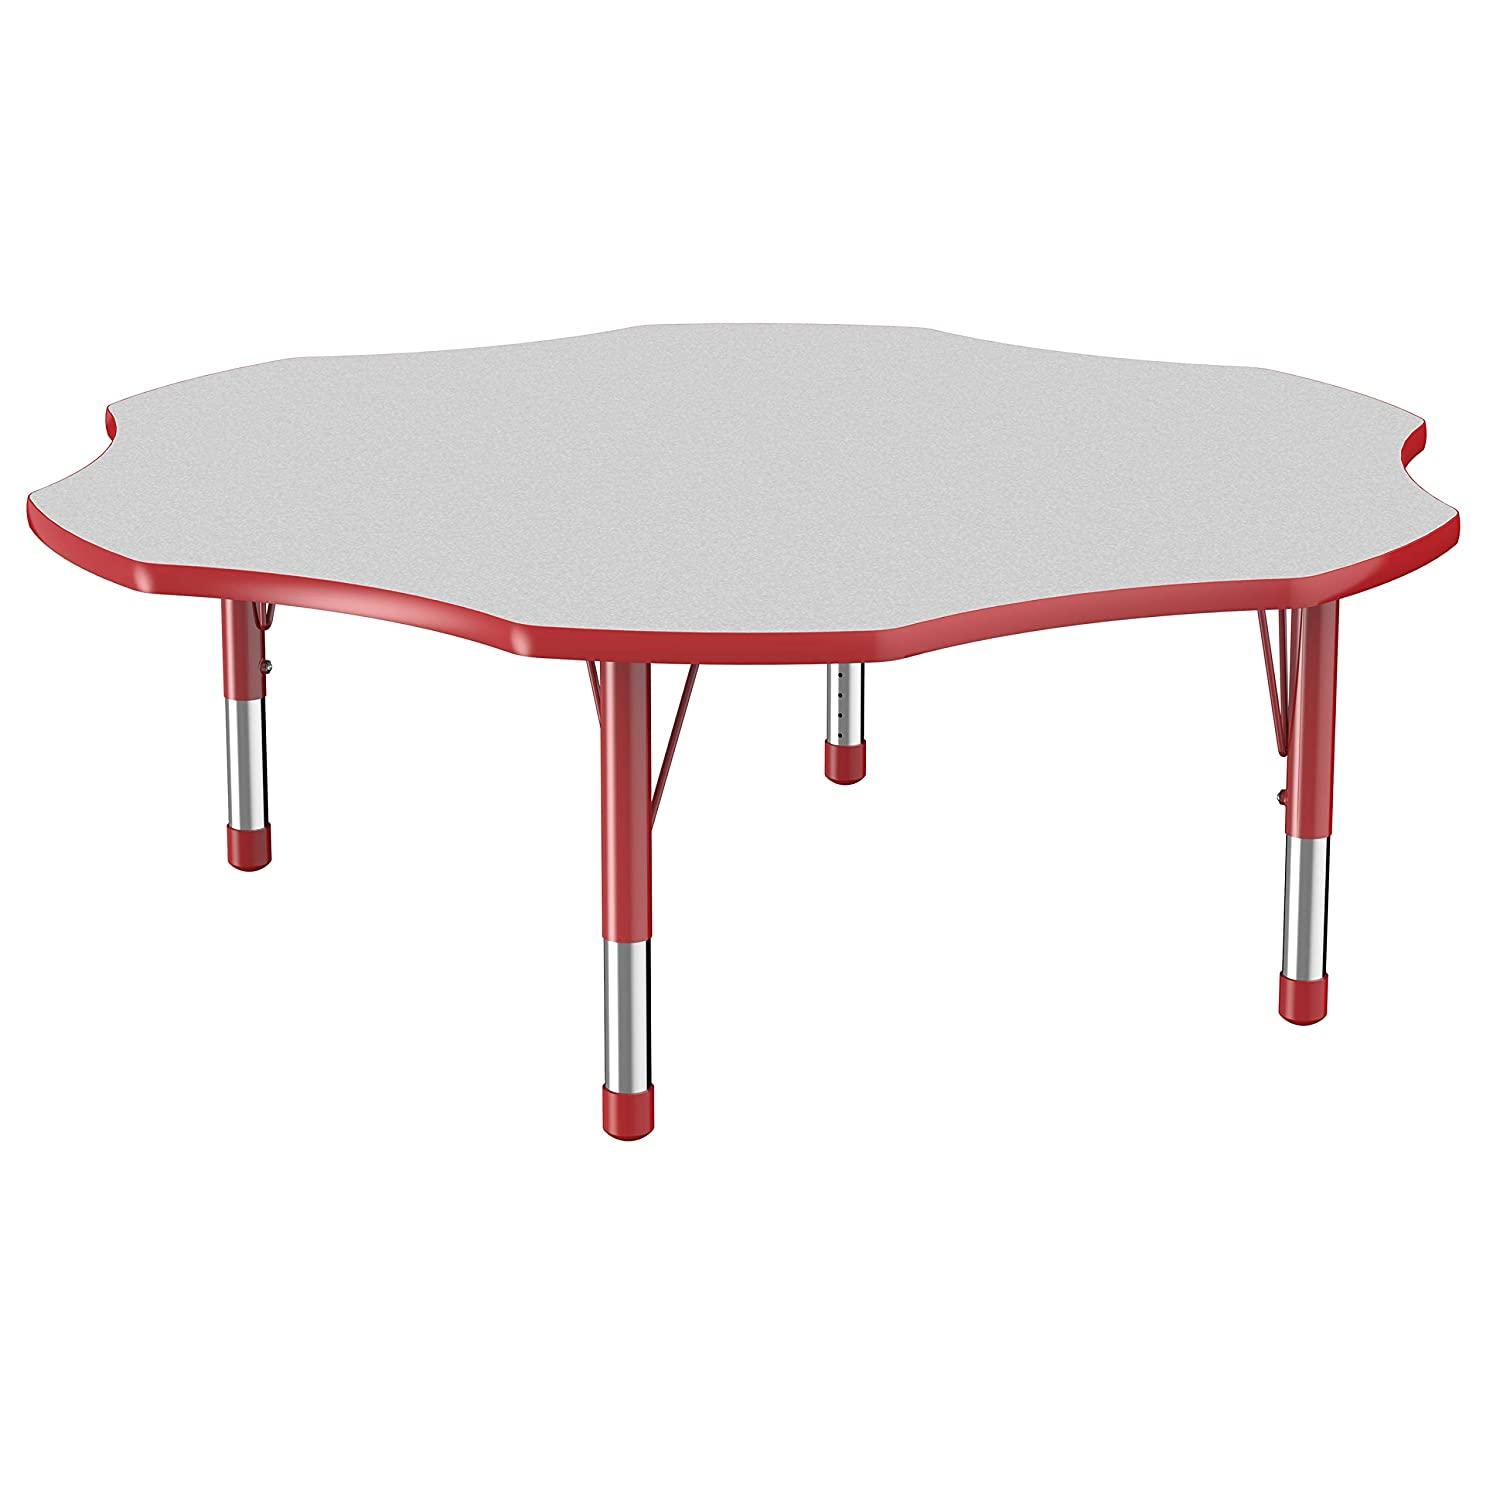 FDP Flower Activity School and Classroom Kids Table (60 inch), Toddler Legs for Collaborative Seating Environments, Adjustable Height 15-24 inches - Gray Top and Red Edge